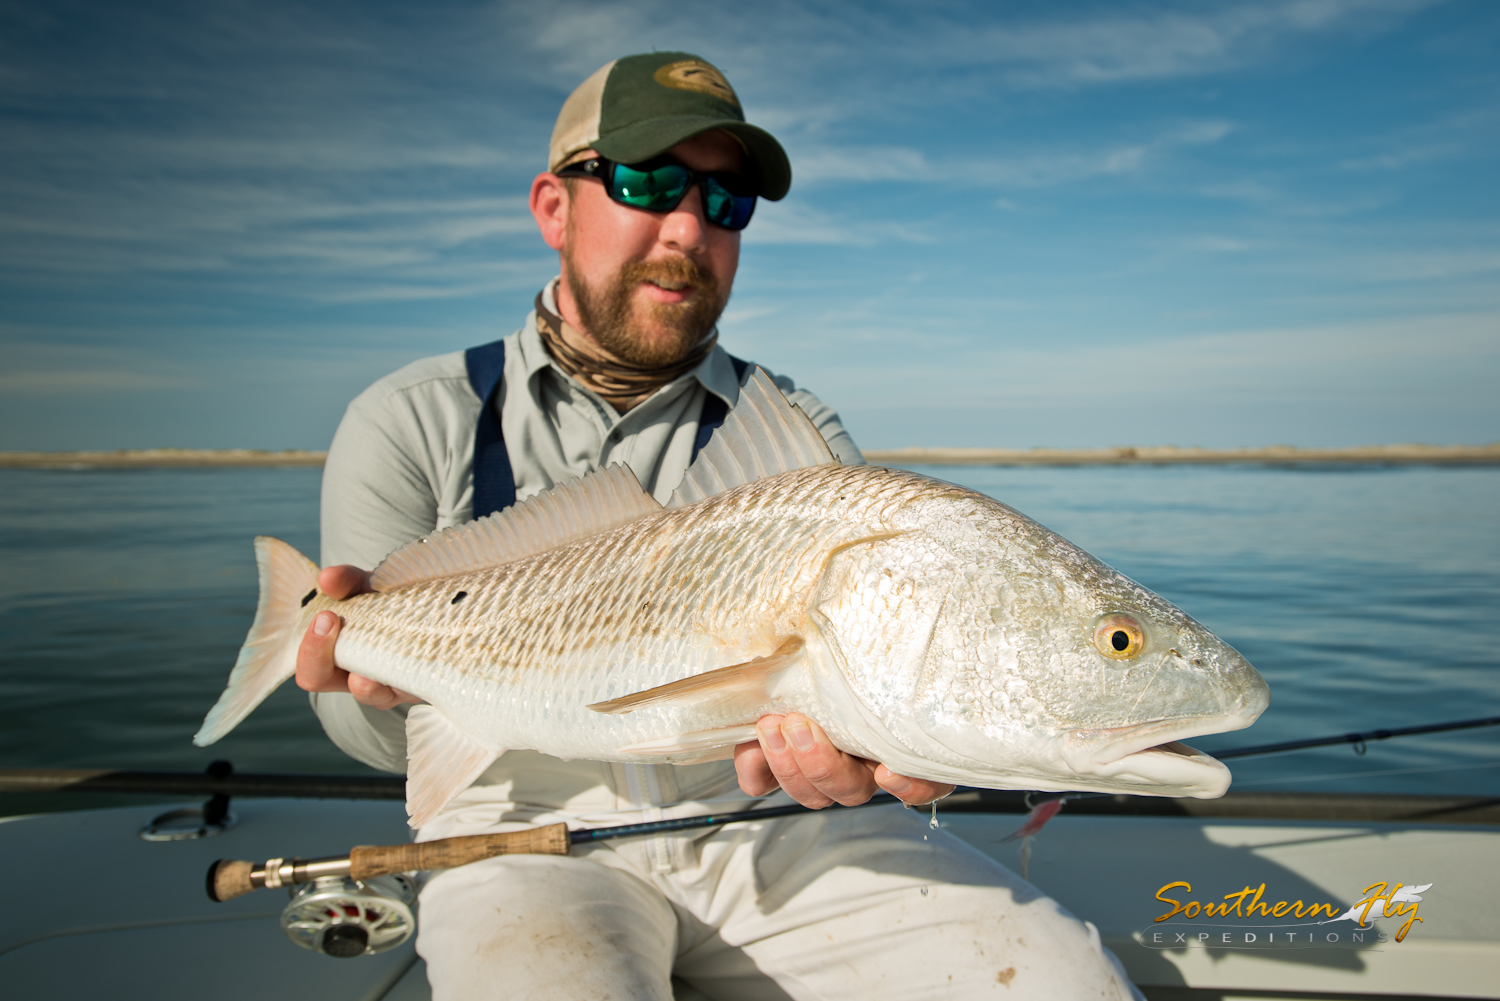 Fly fishing and light tackle fishing new orleans with southern fly expeditions